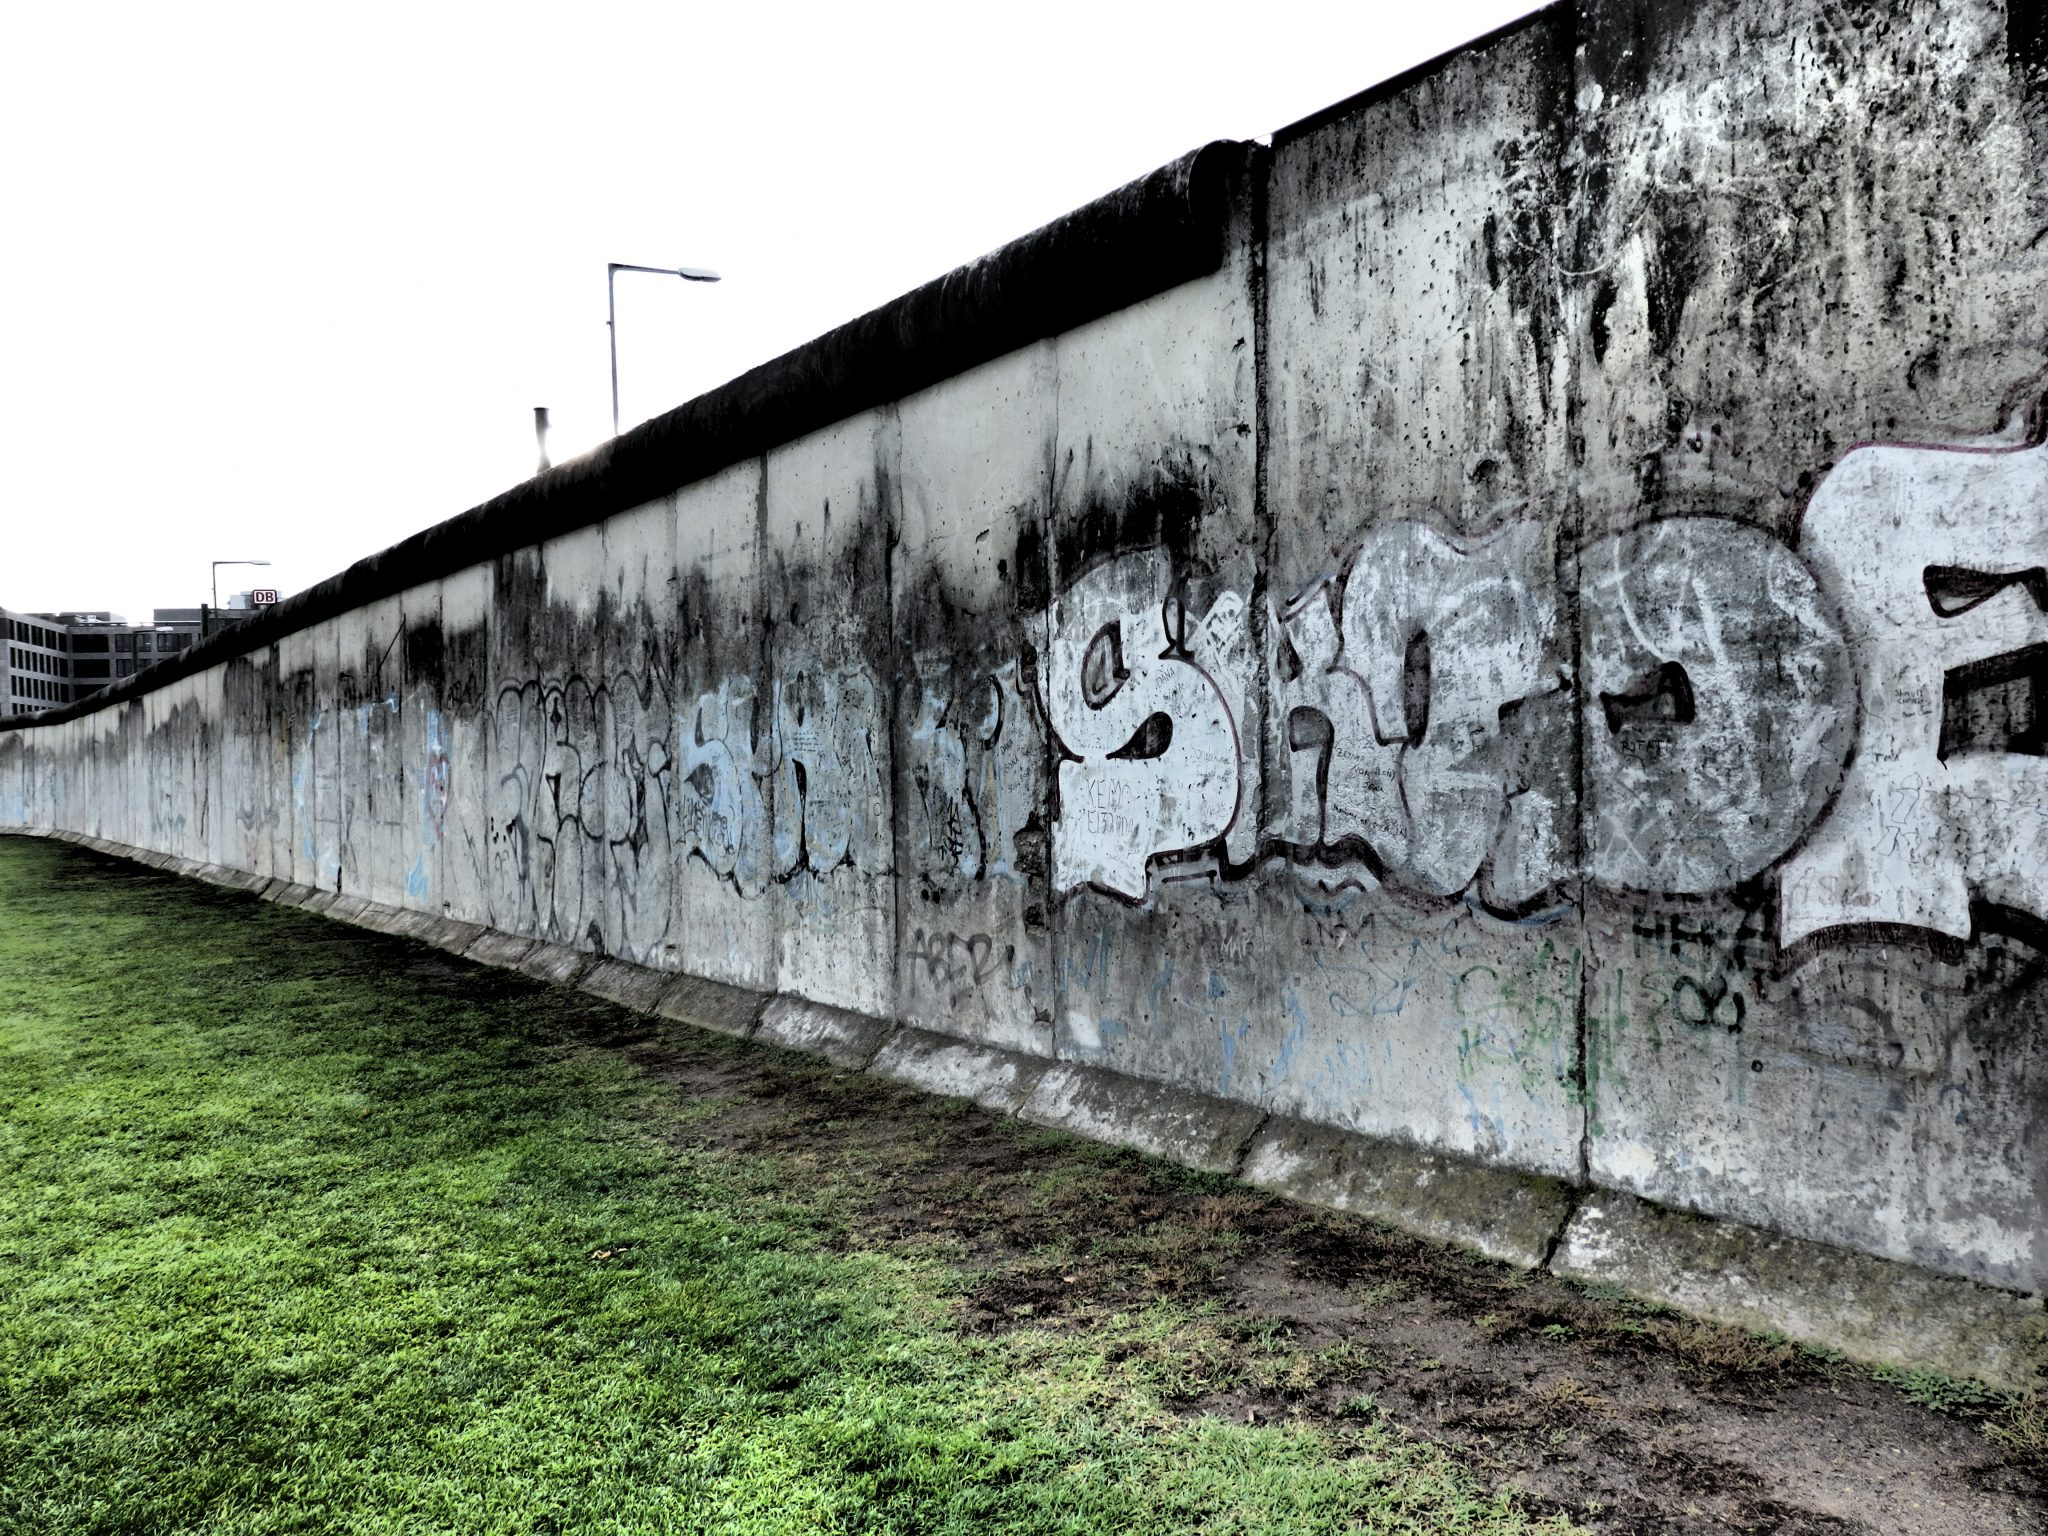 a piece of the outer Berlin wall. The graffiti must be from after the wall fell because it's the side facing the death strip.